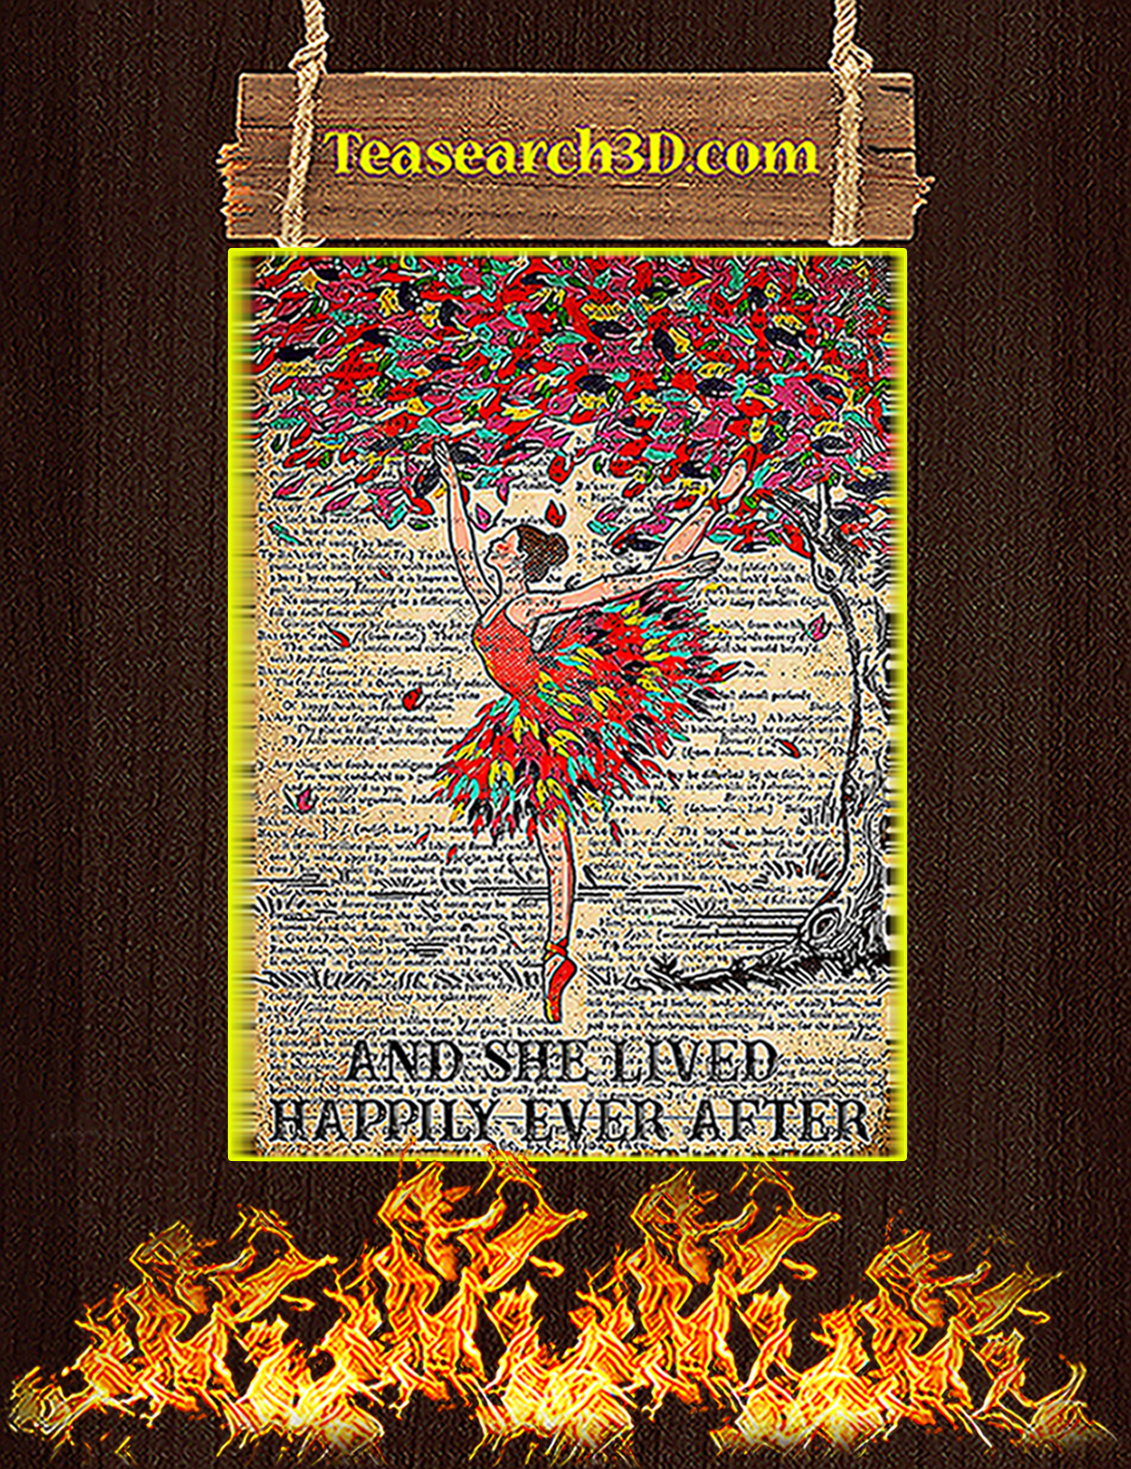 Ballet And she lived happily ever after poster A3